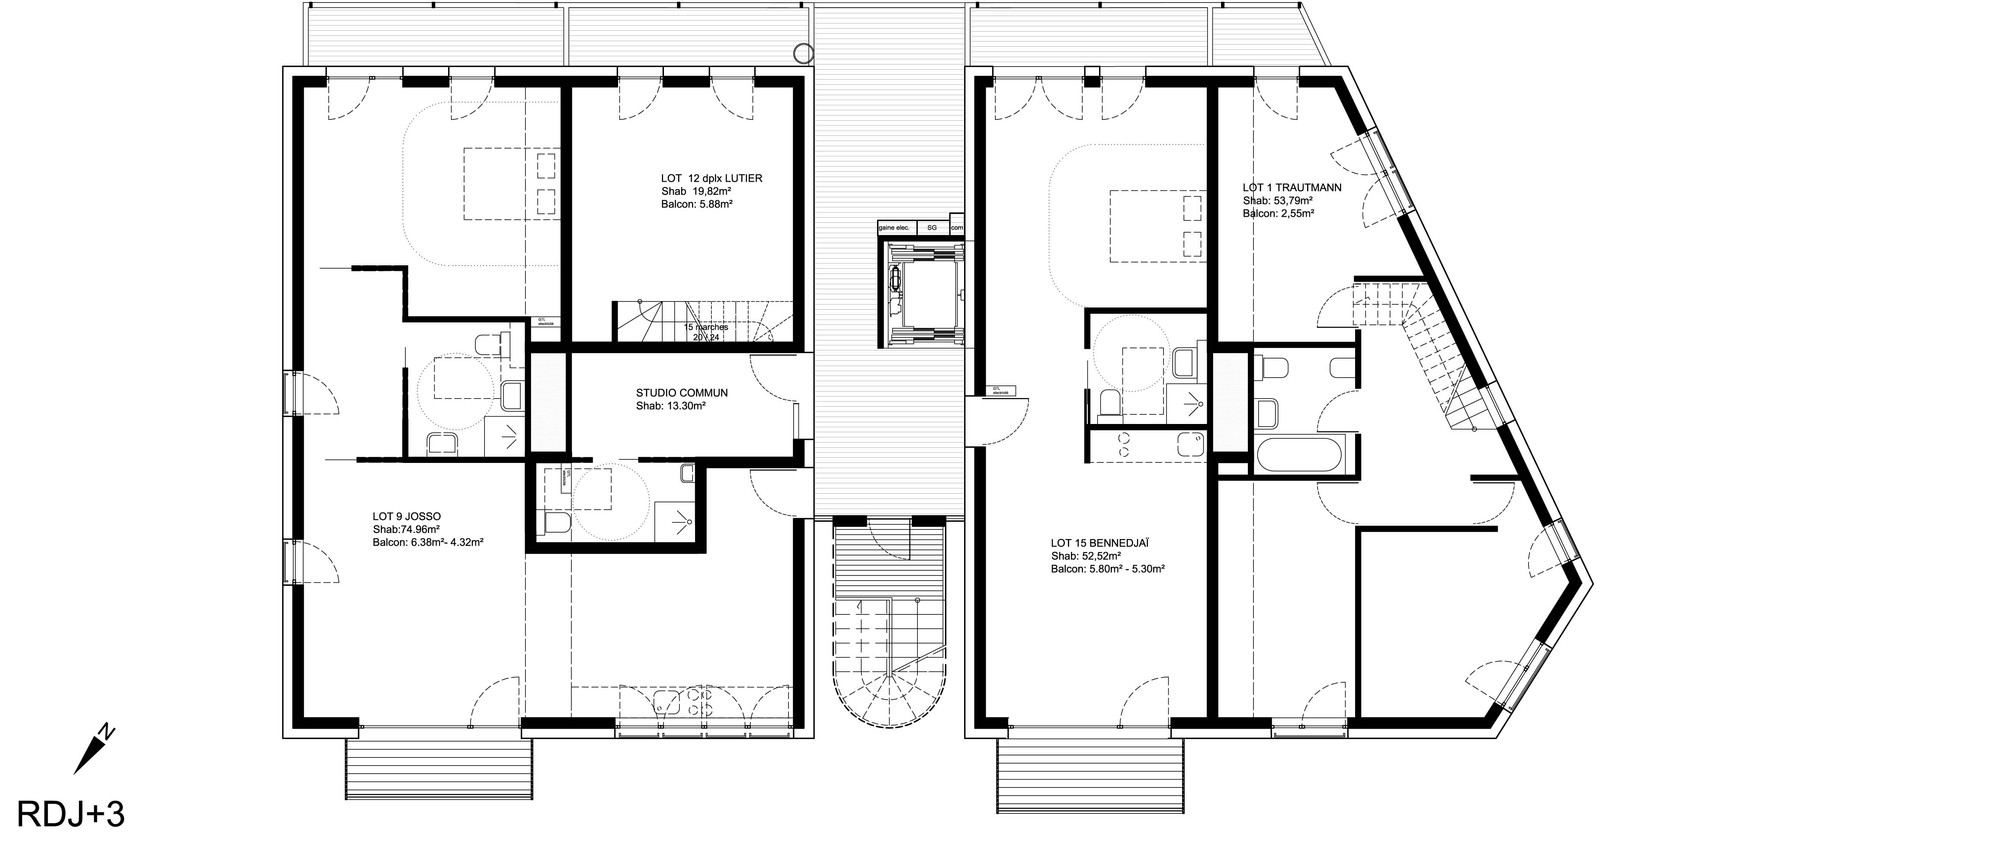 Design Your Own Salon Floor Plan Gallery Of Co Housing Project Karawitz Architecture 4